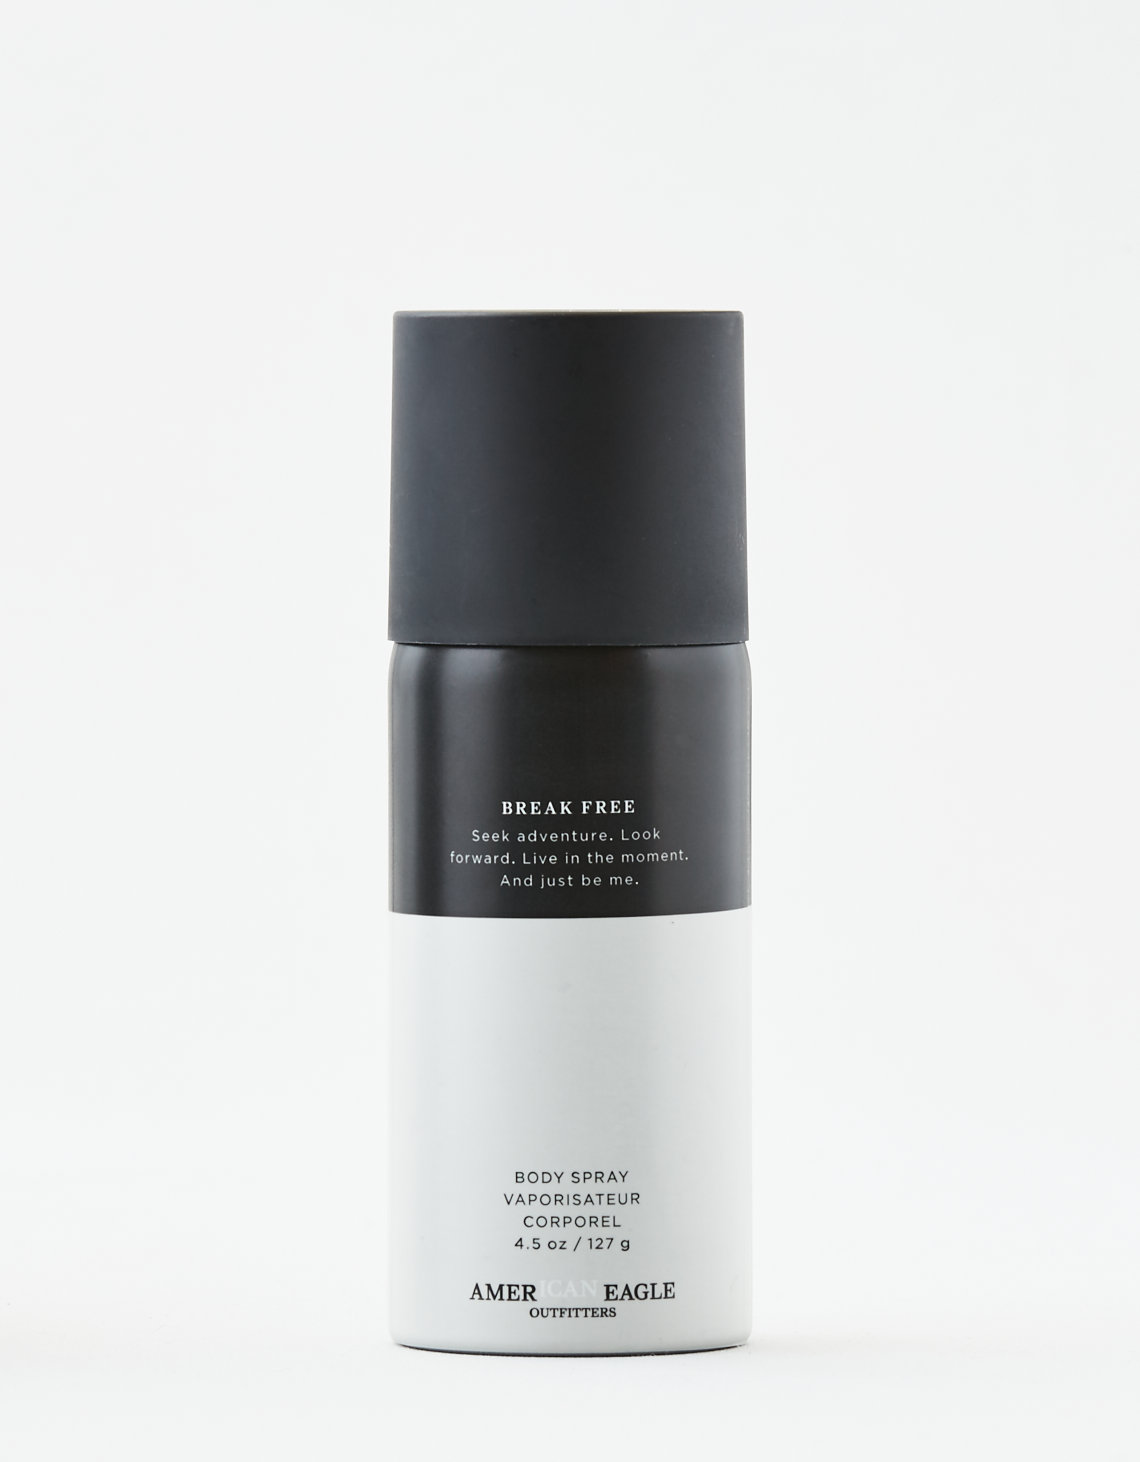 Break Free Body Spray White American Eagle Outfitters Product Image